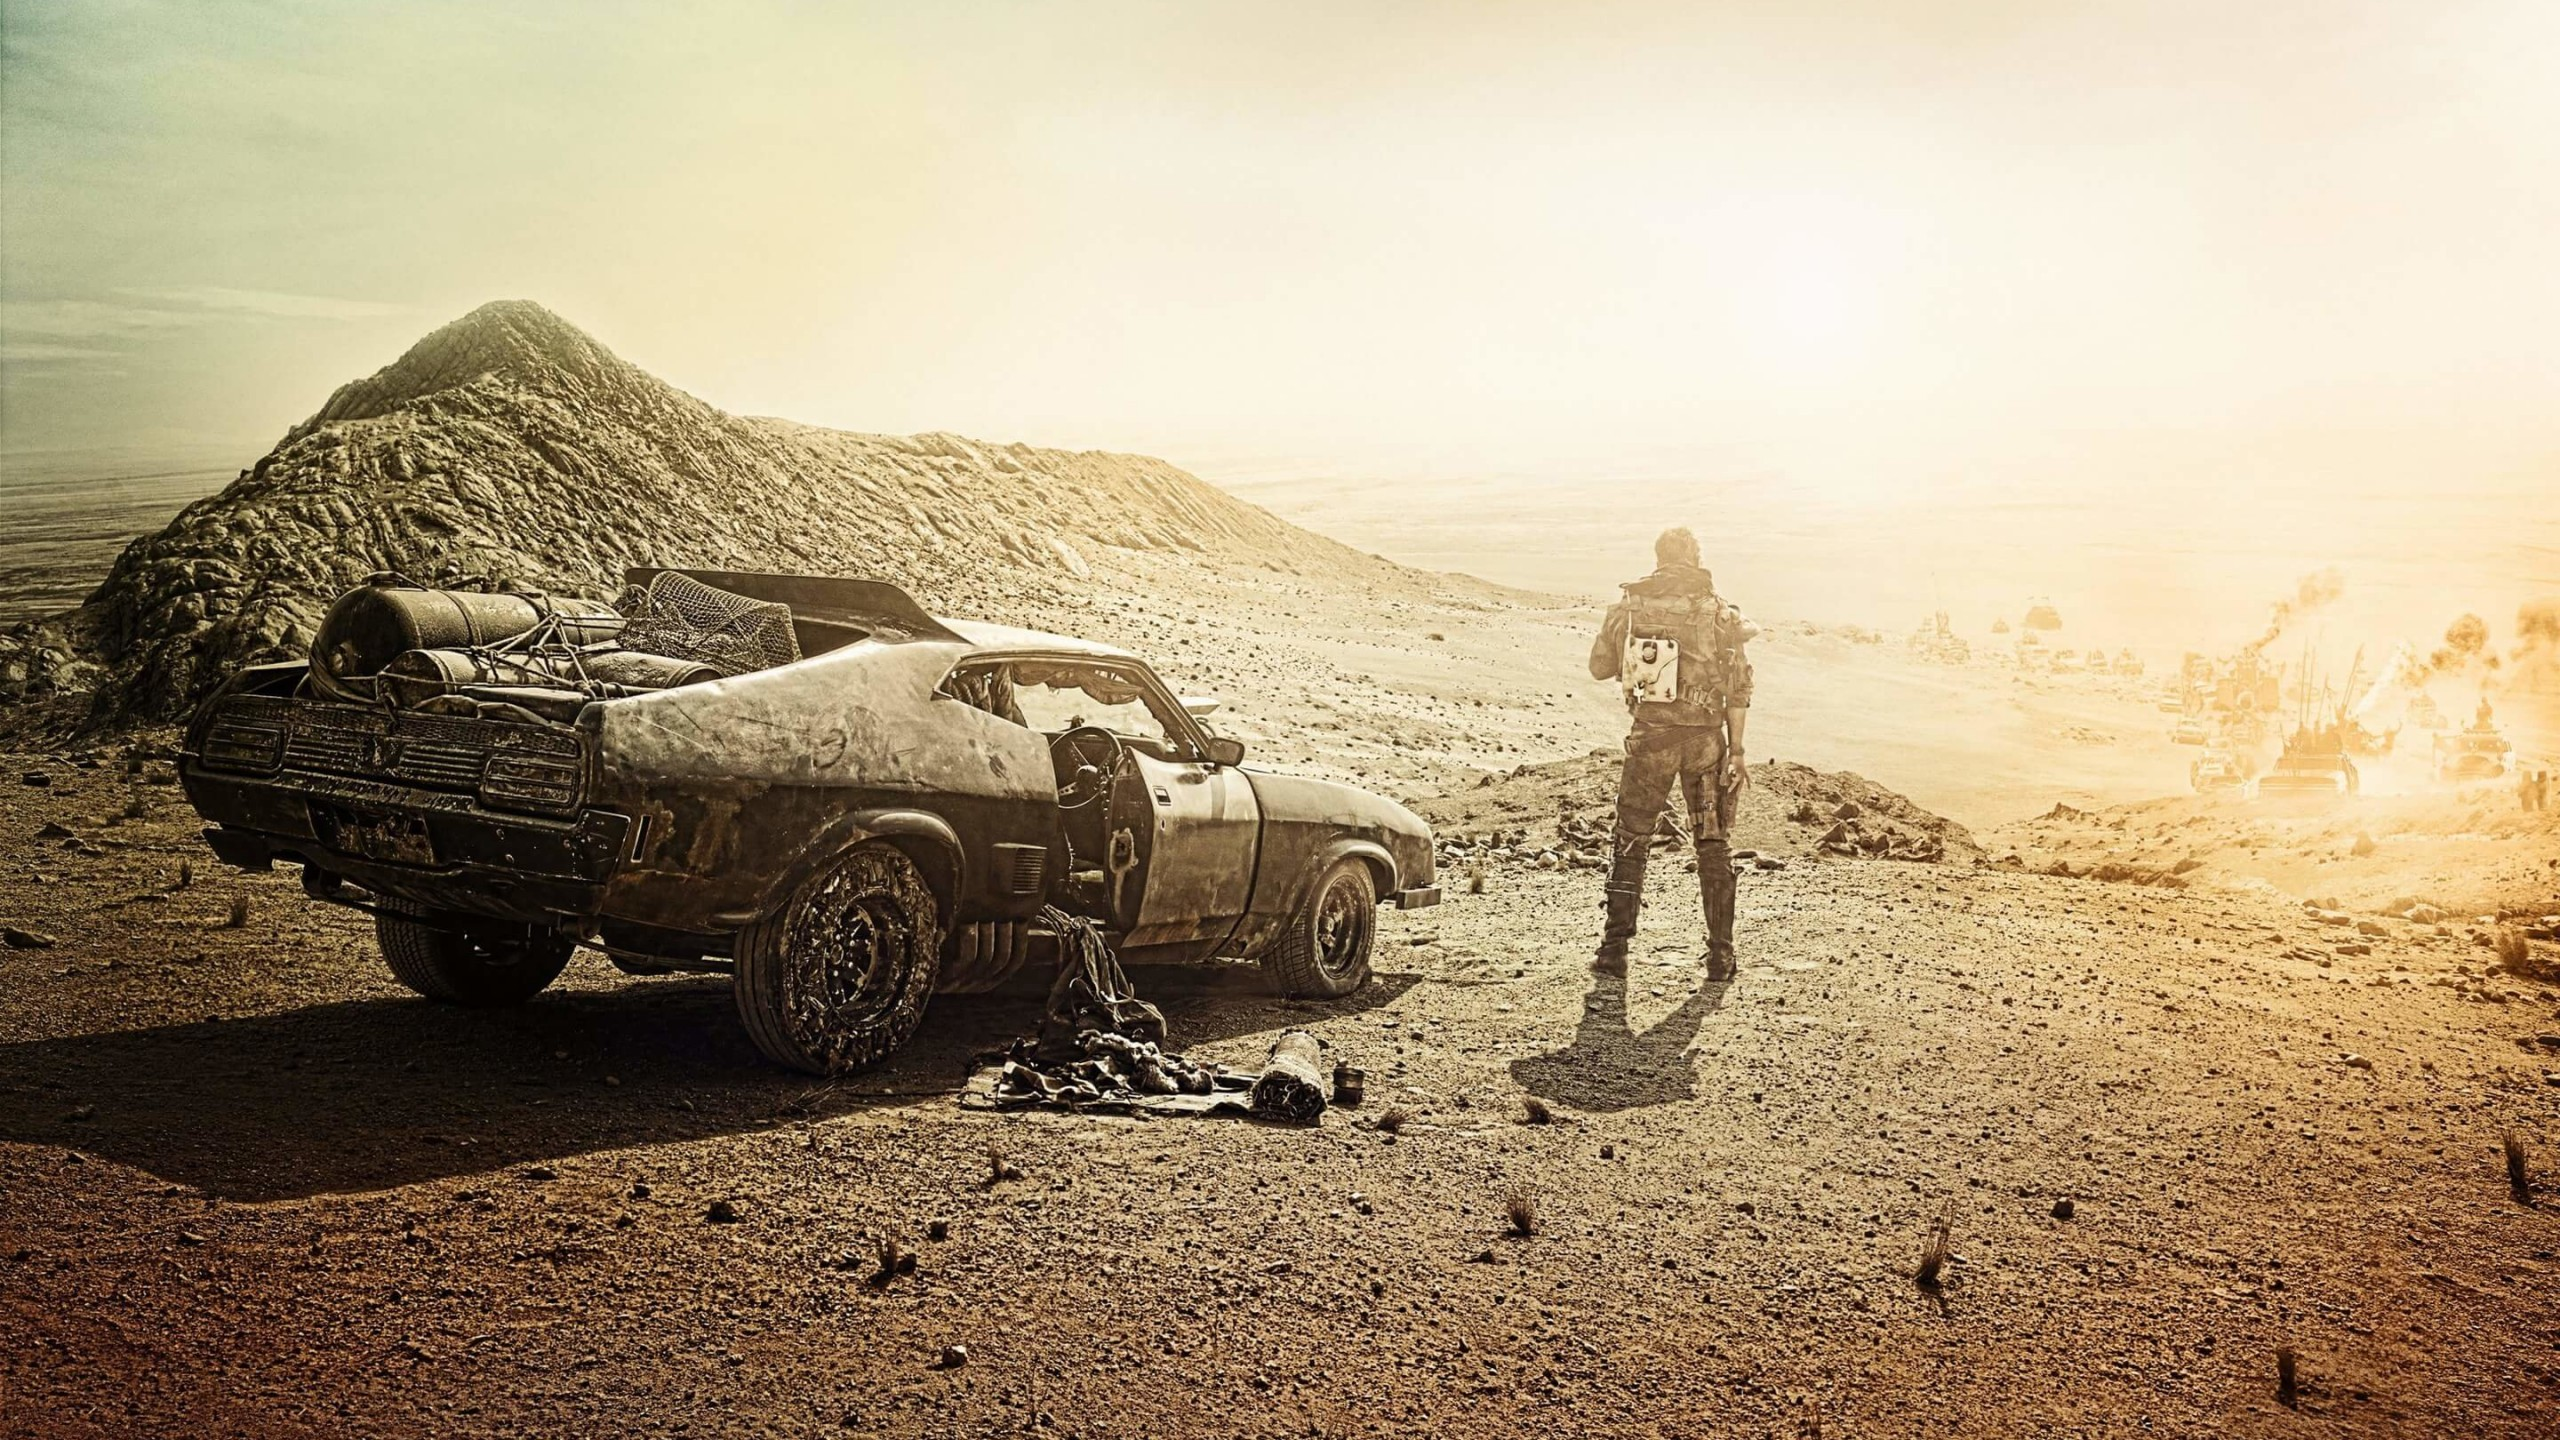 Mad Max Fury Road Movie Wallpaper for Social Media YouTube Channel Art